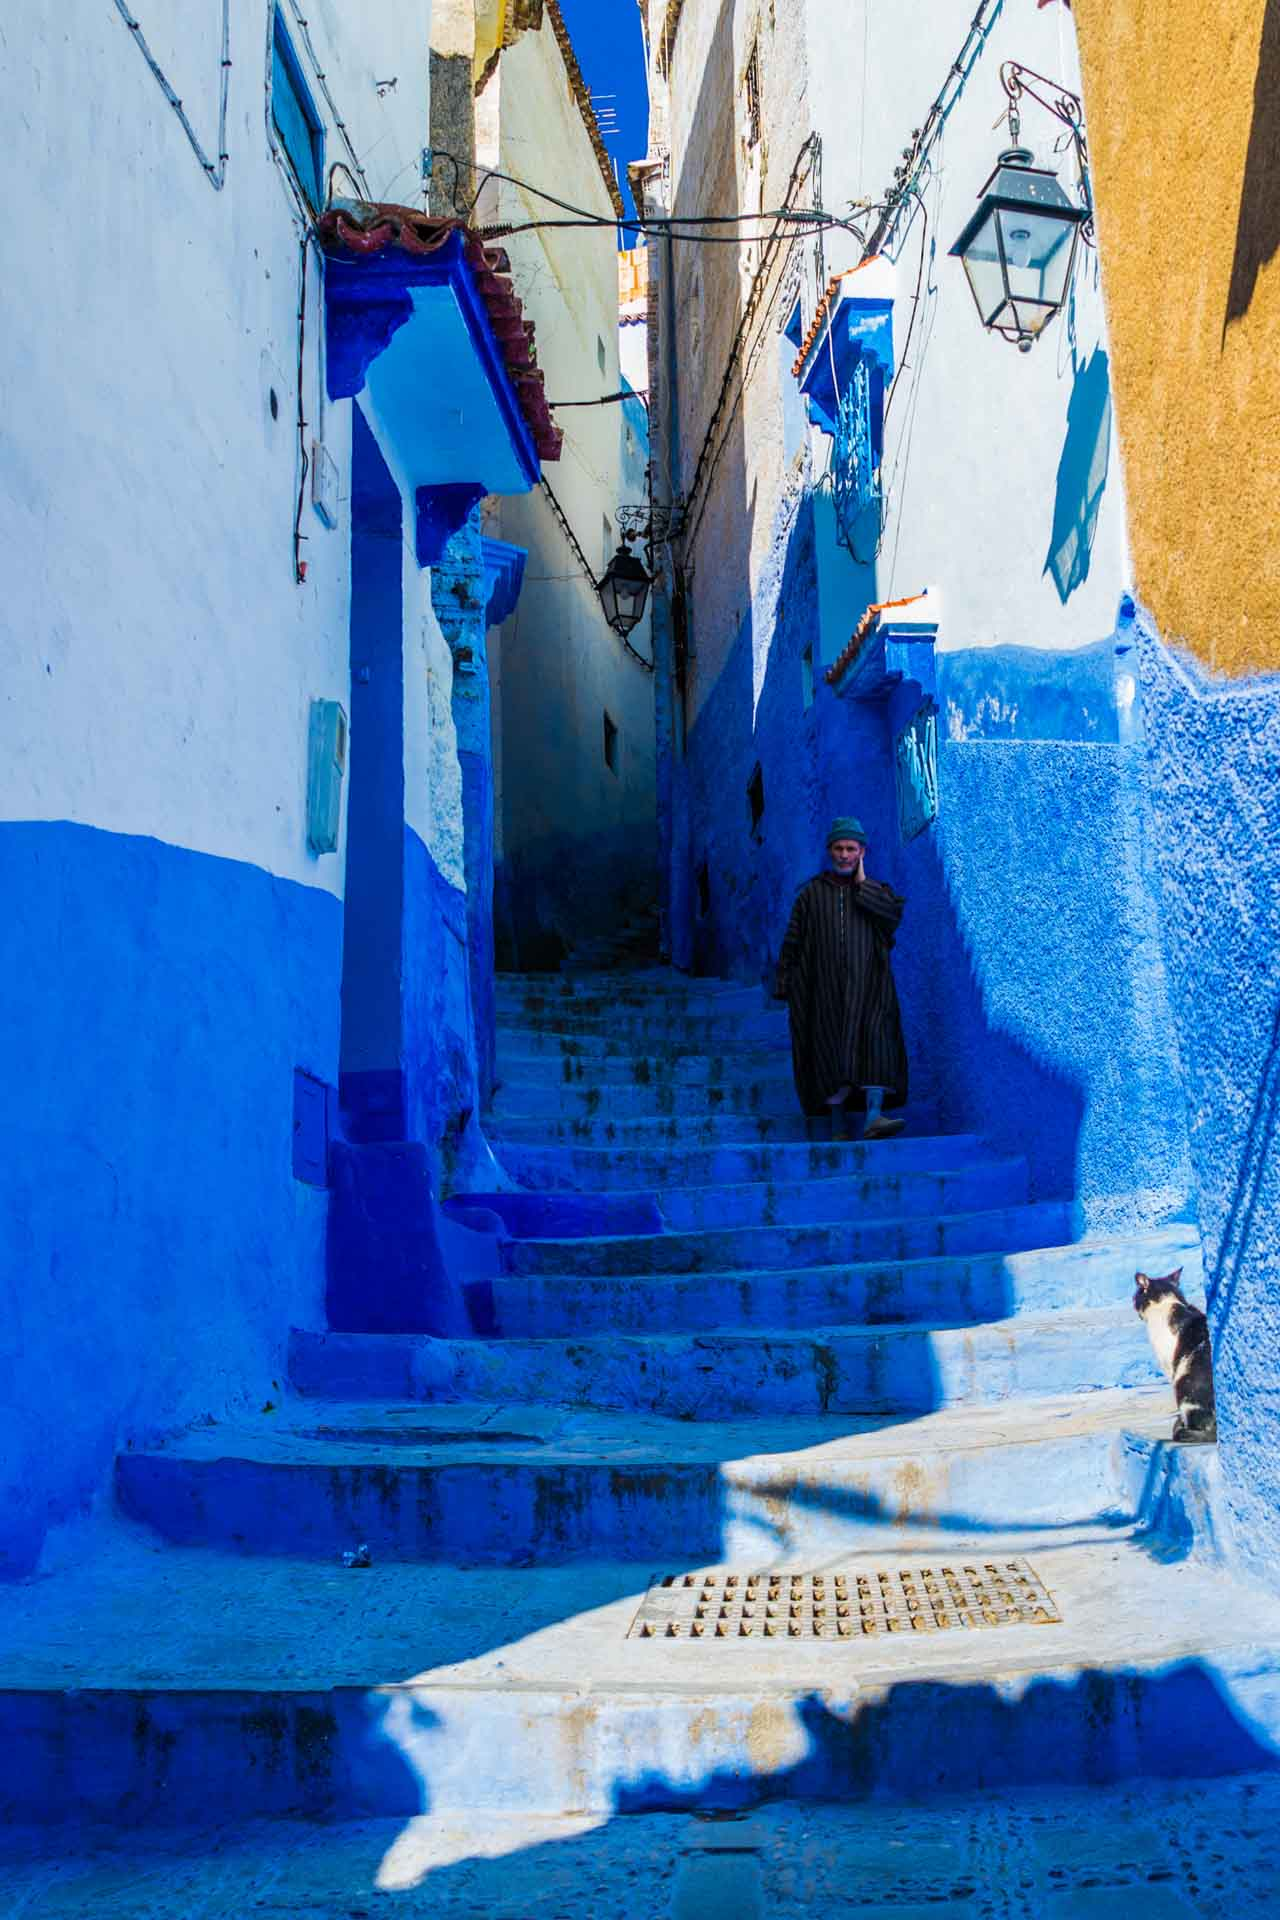 Morocco Chefchaouen blue stairs, morocco, chefchaouen, , pescart, photo blog, travel blog, blog, photo travel blog, enrico pescantini, pescantini